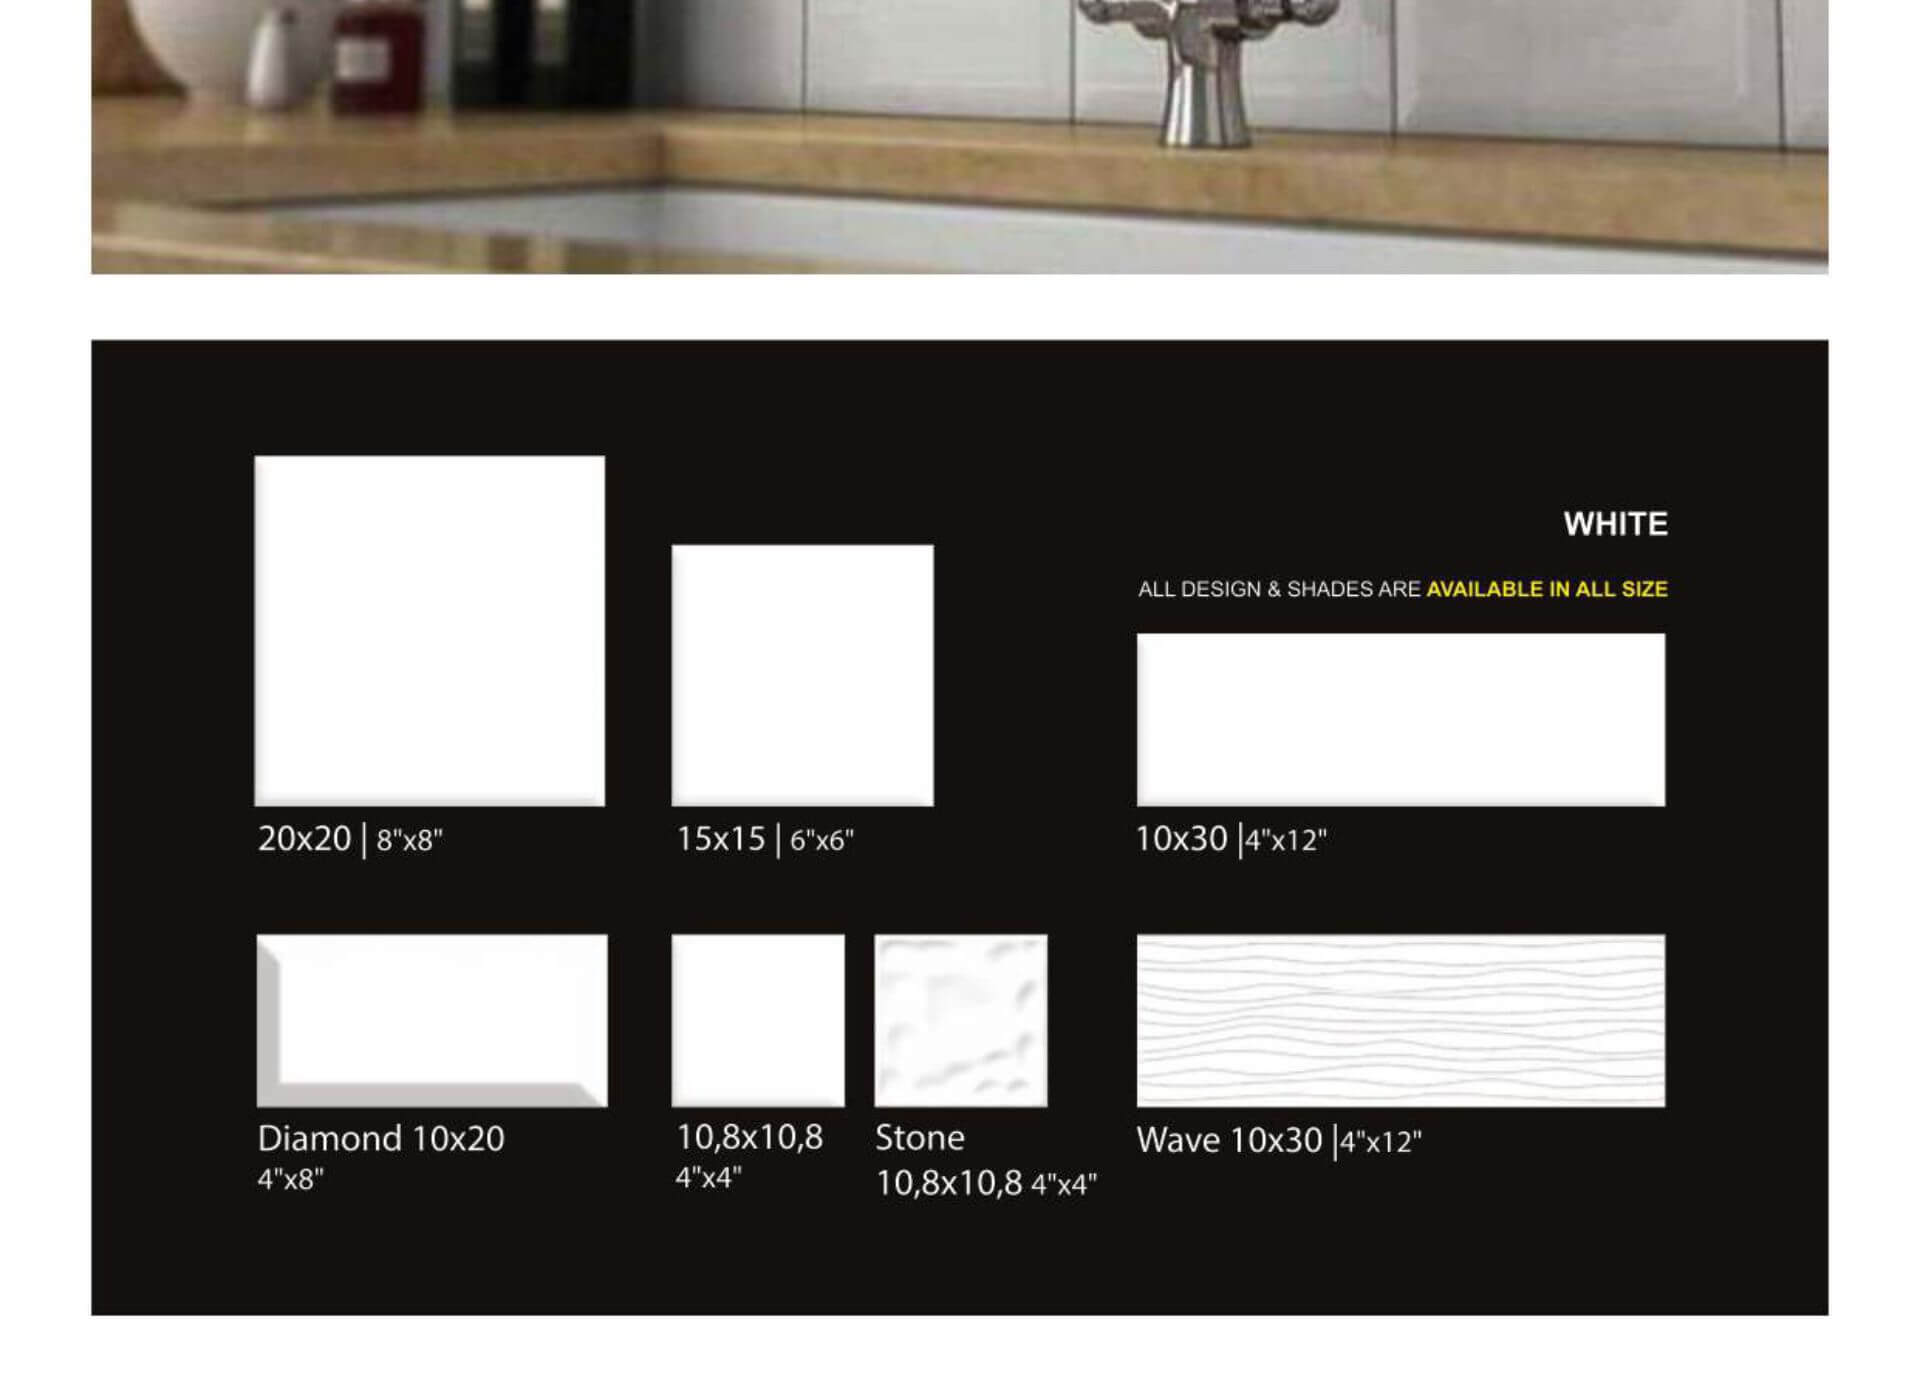 Subway-Tiles-All-Sizes-Page1